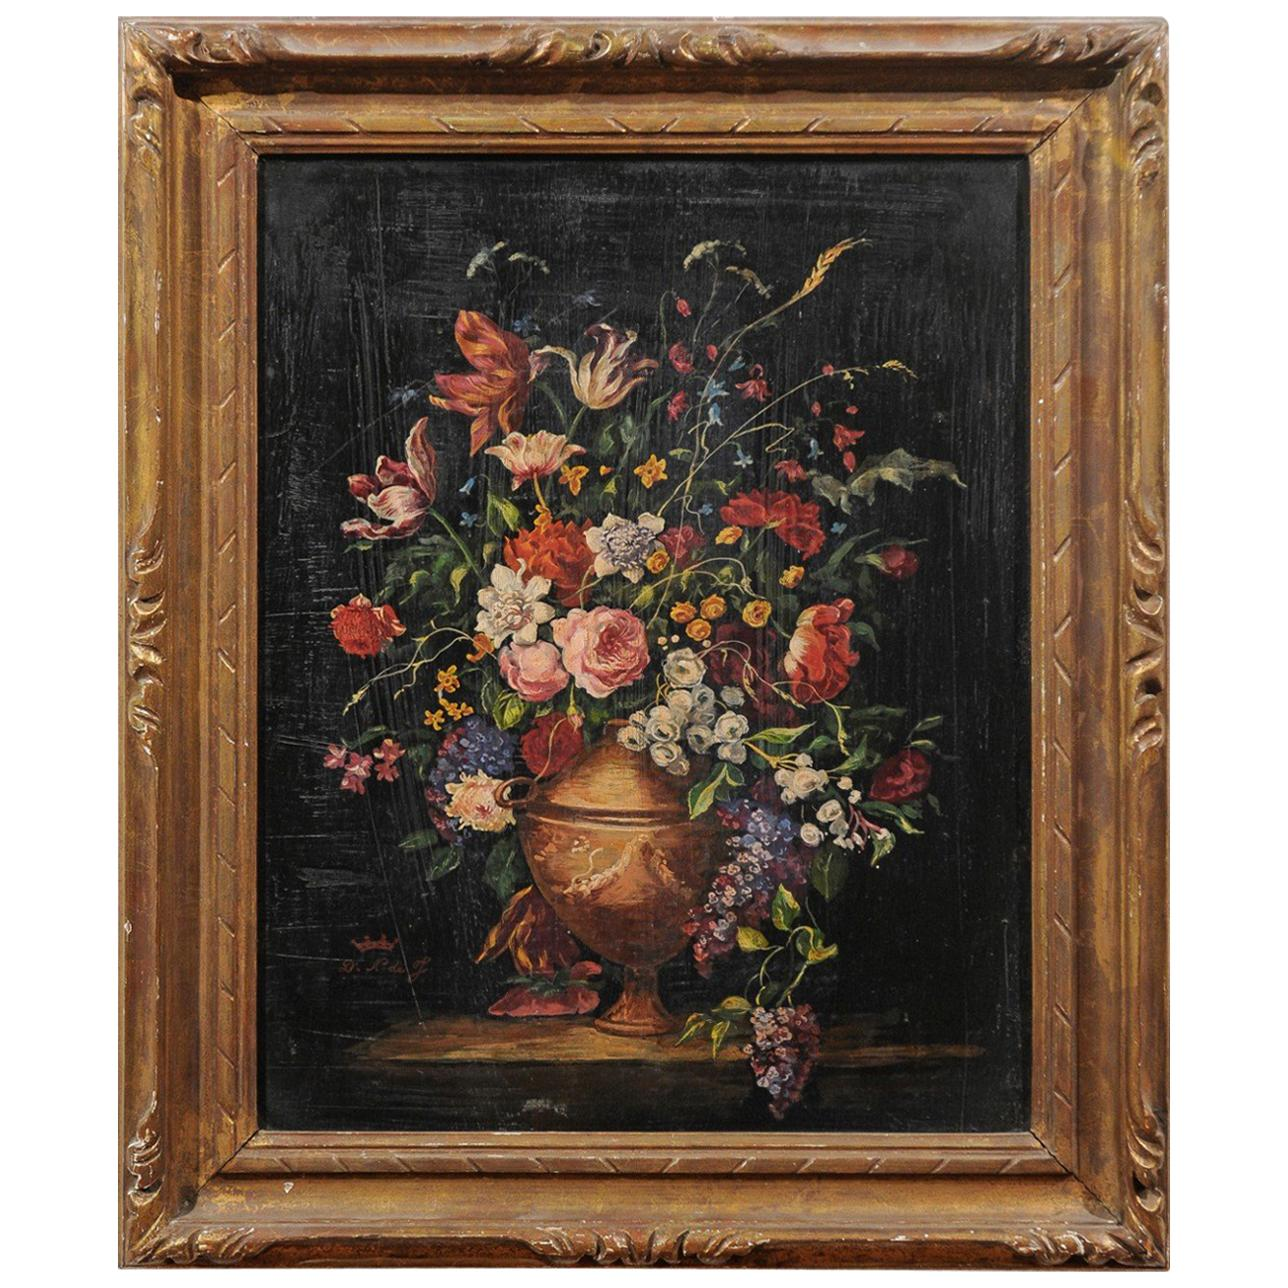 French 19th Century Framed Still-Life Painting Depicting a Bouquet of Flowers